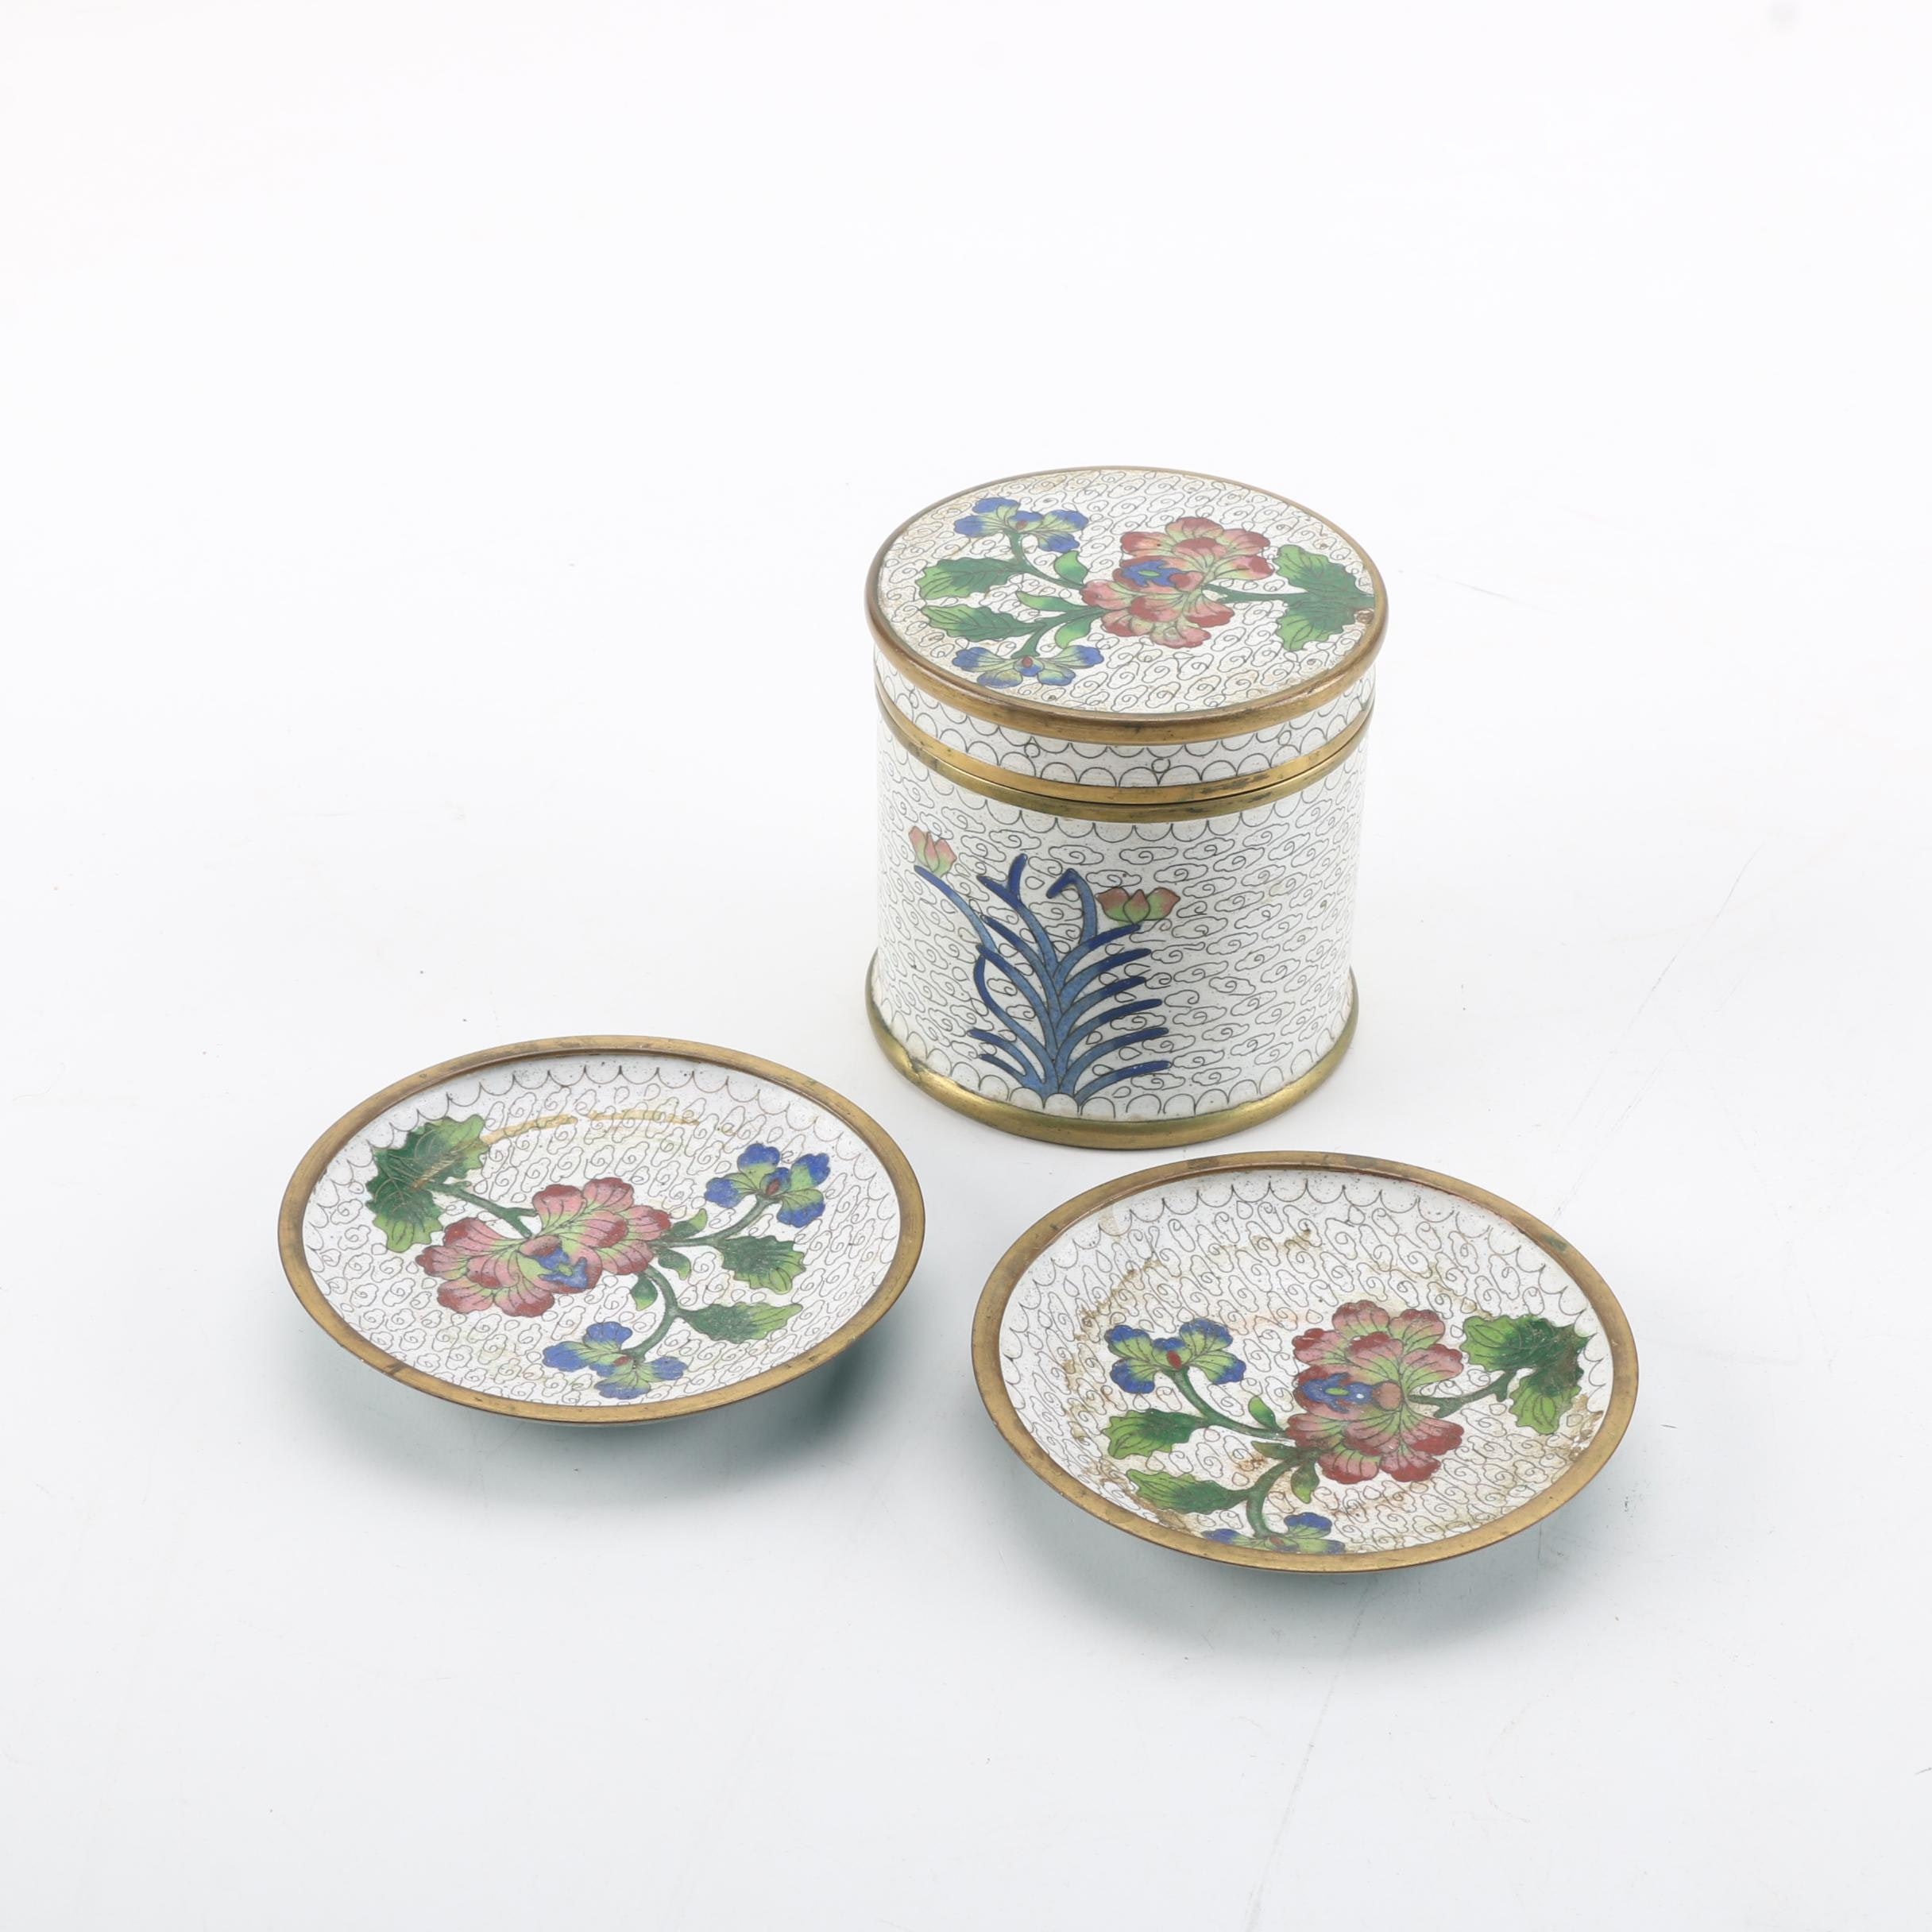 Chinese Cloisonné Jar and Saucers